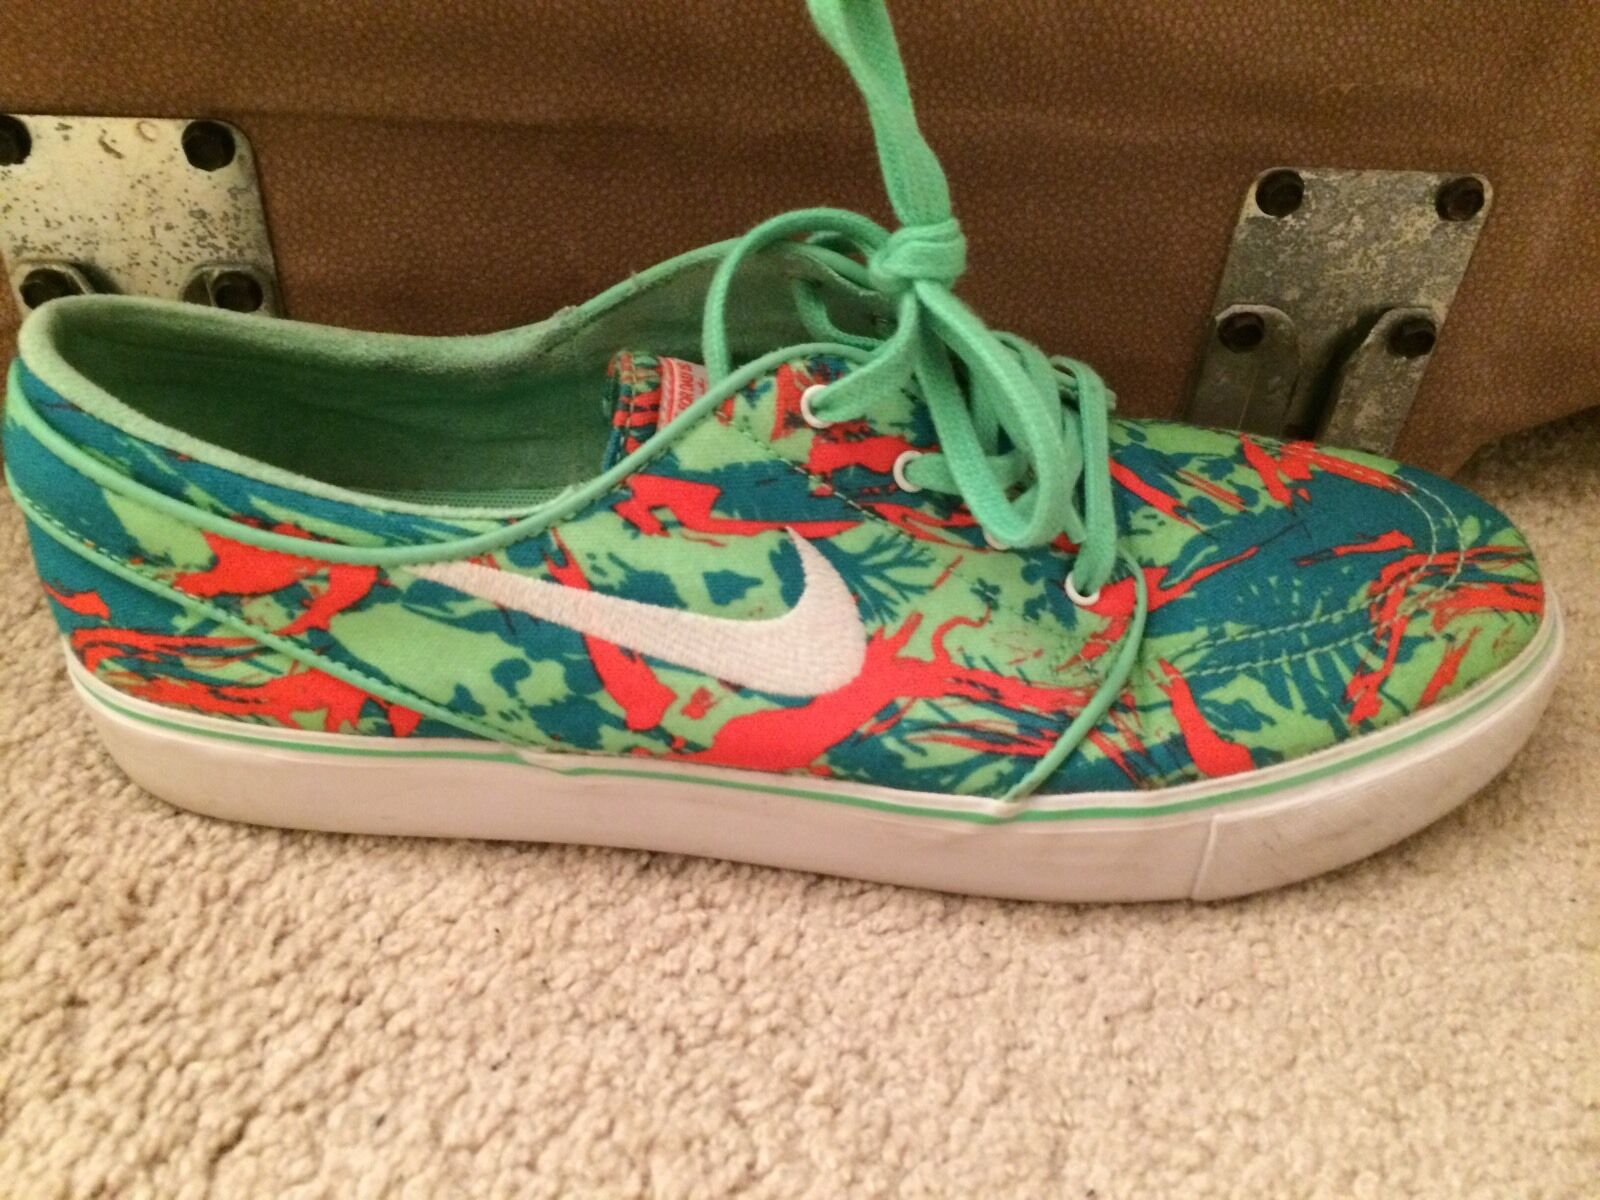 new nike skate shoes  Cheap and fashionable